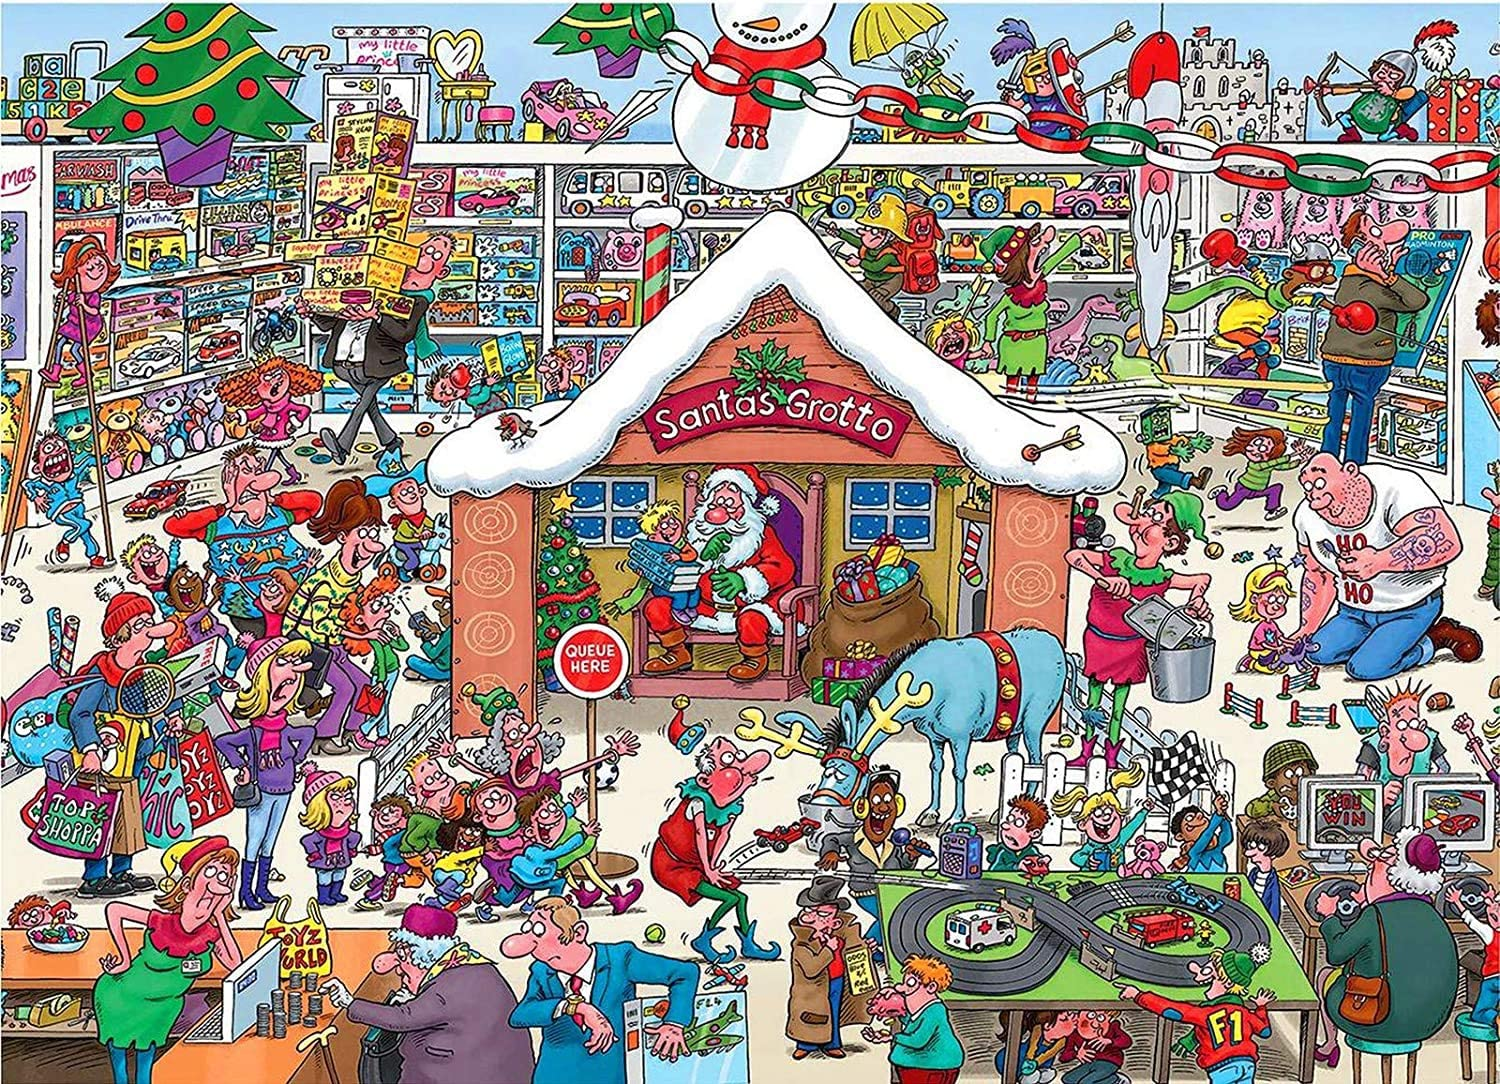 1000 Pieces Wooden Puzzle,Christmas Shop,Christmas Town Jigsaw Puzzles – Every Piece is Unique, Softclick Technology Means Pieces Fit Together Perfectly